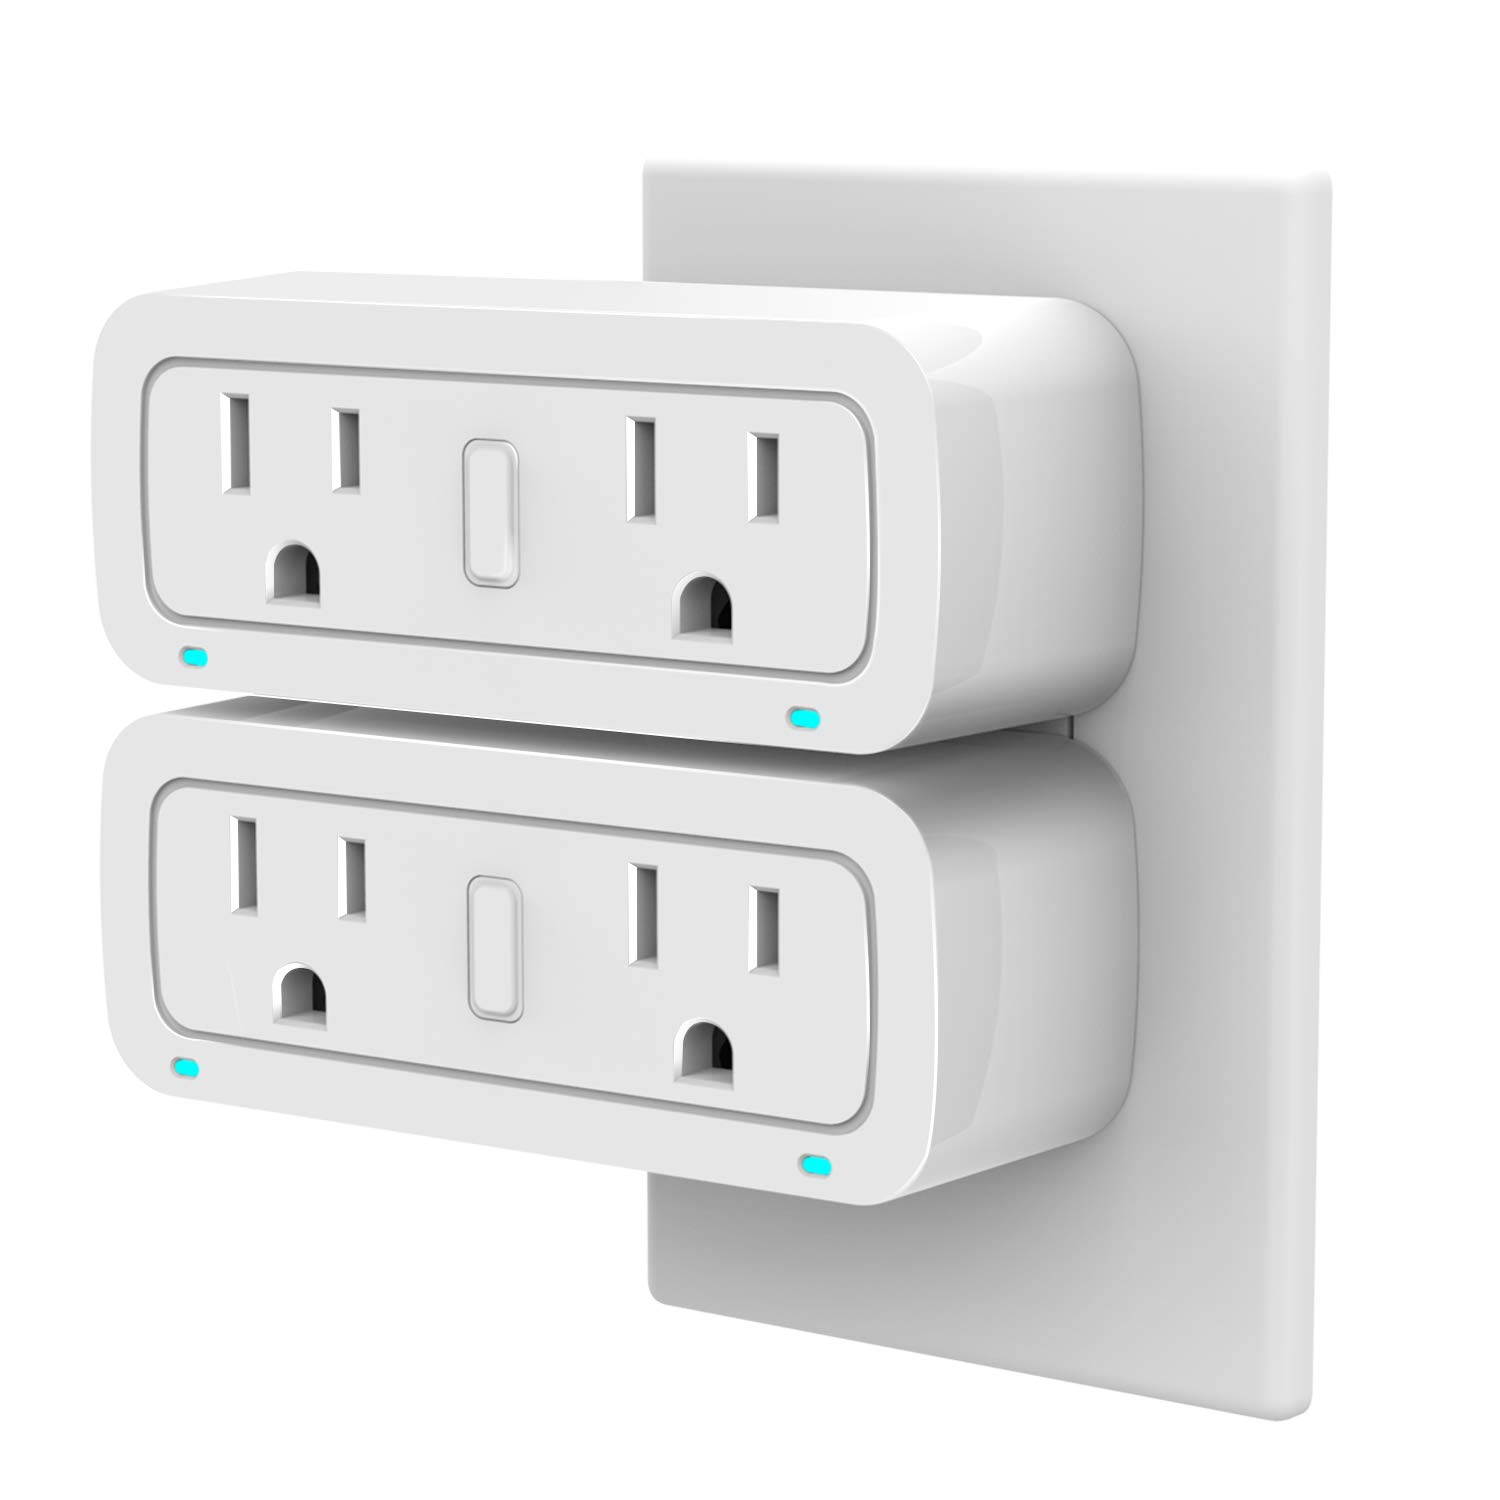 WiFi Smart Plug 2 in 1 Dual Outlet Works Separately with Energy Monitoring and Compatible with Alexa Google Home IFTTT No Hub Required 2 Pack